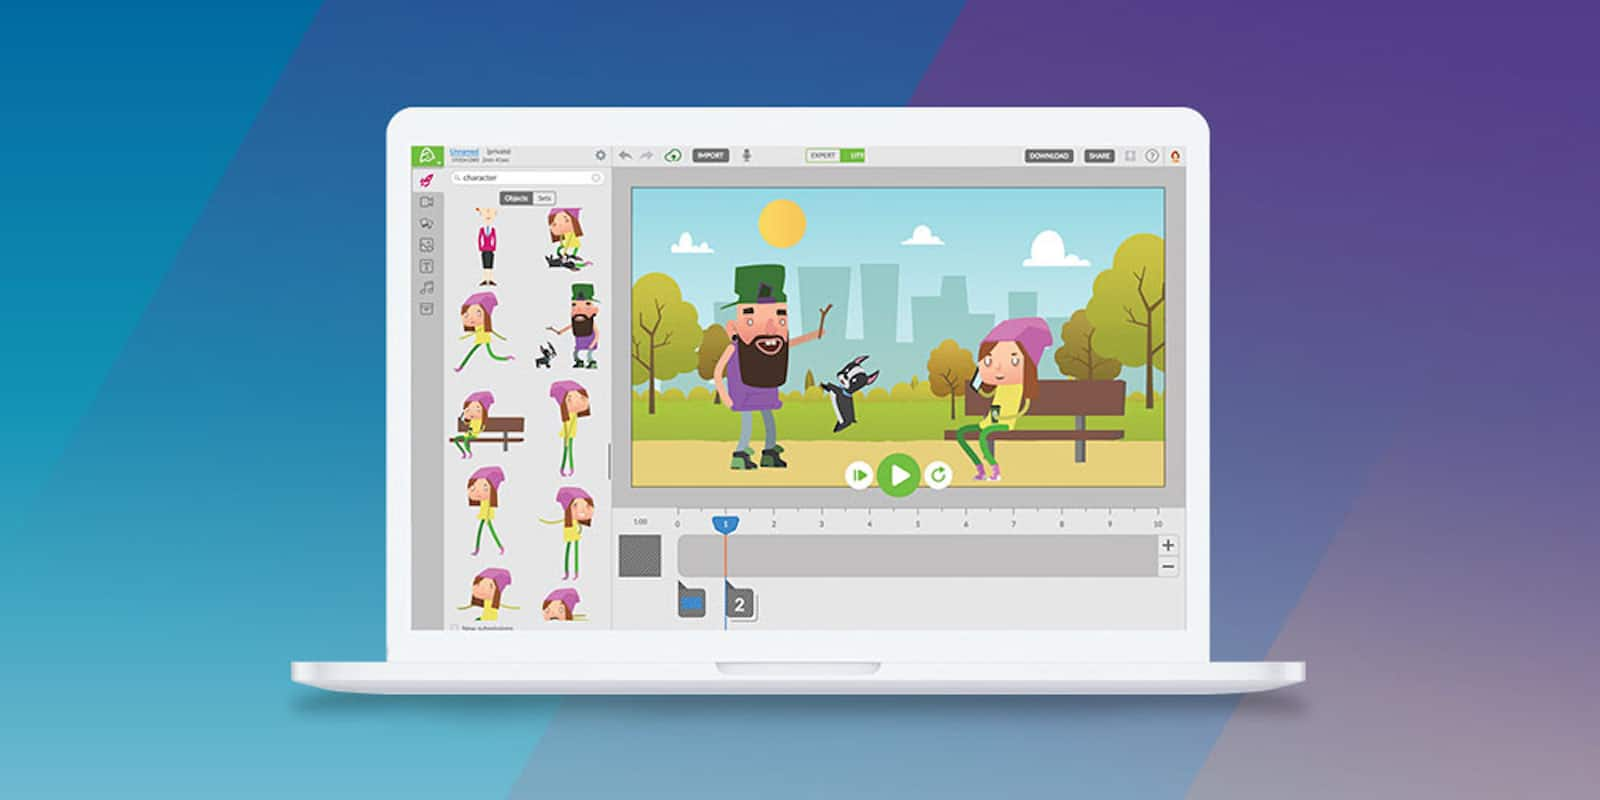 With this web-based editor you can easily create engaging animations for teaching, presentations, branding, and lots more.